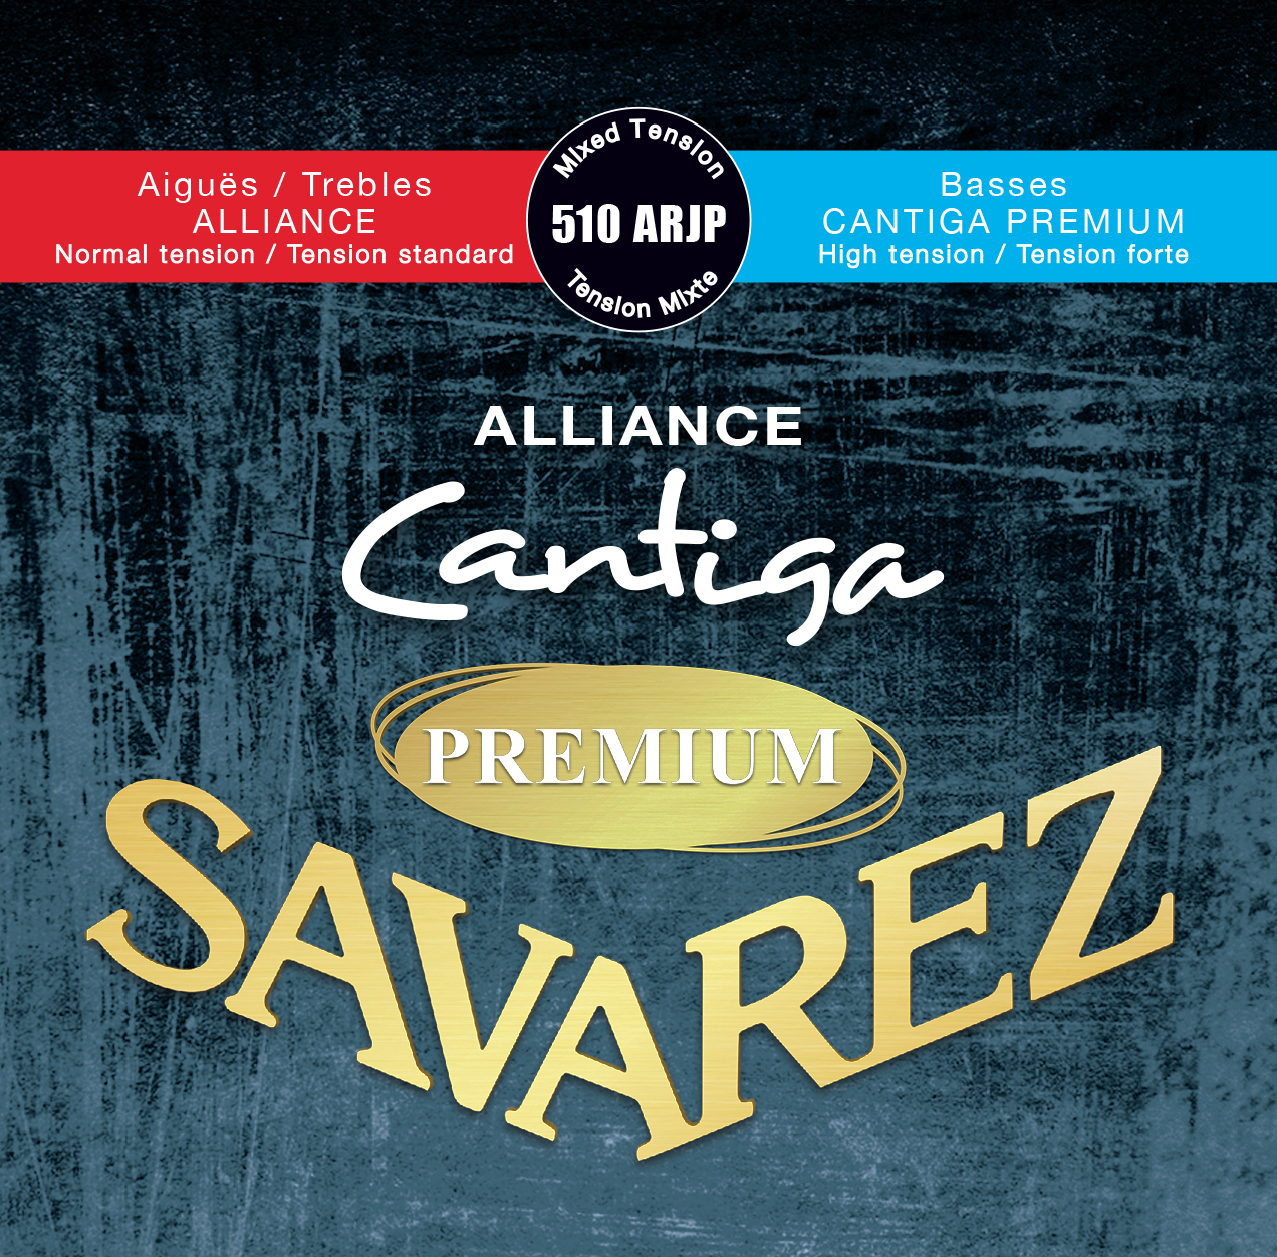 ALLIANCE CANTIGA PREMIUM TENSION MIXTE 510ARJP